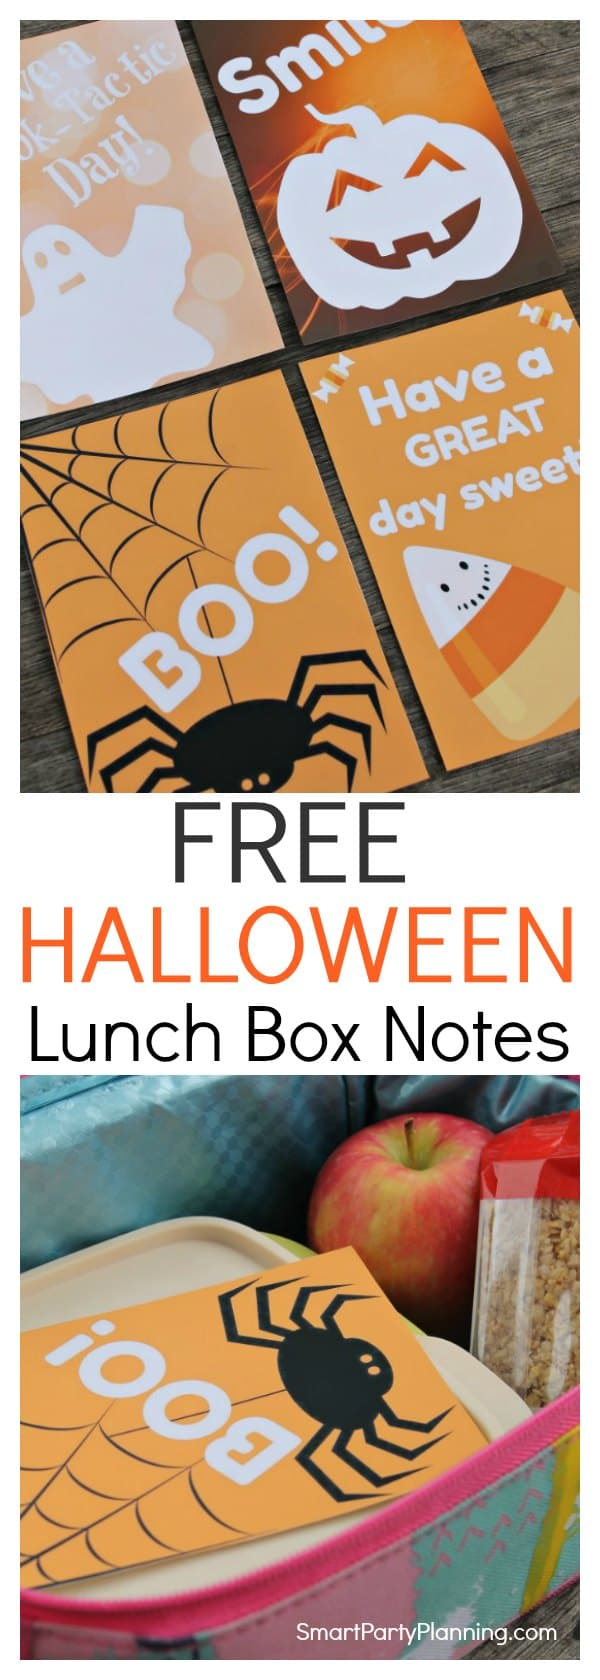 Print off some fun Halloween lunch box notes for the kids today. They are the easiest way to surprise your little one, and they will definitely put a smile on their face. The free Halloween printable's are easy to download. Once printed, simply cut out and have some spooky Halloween fun.